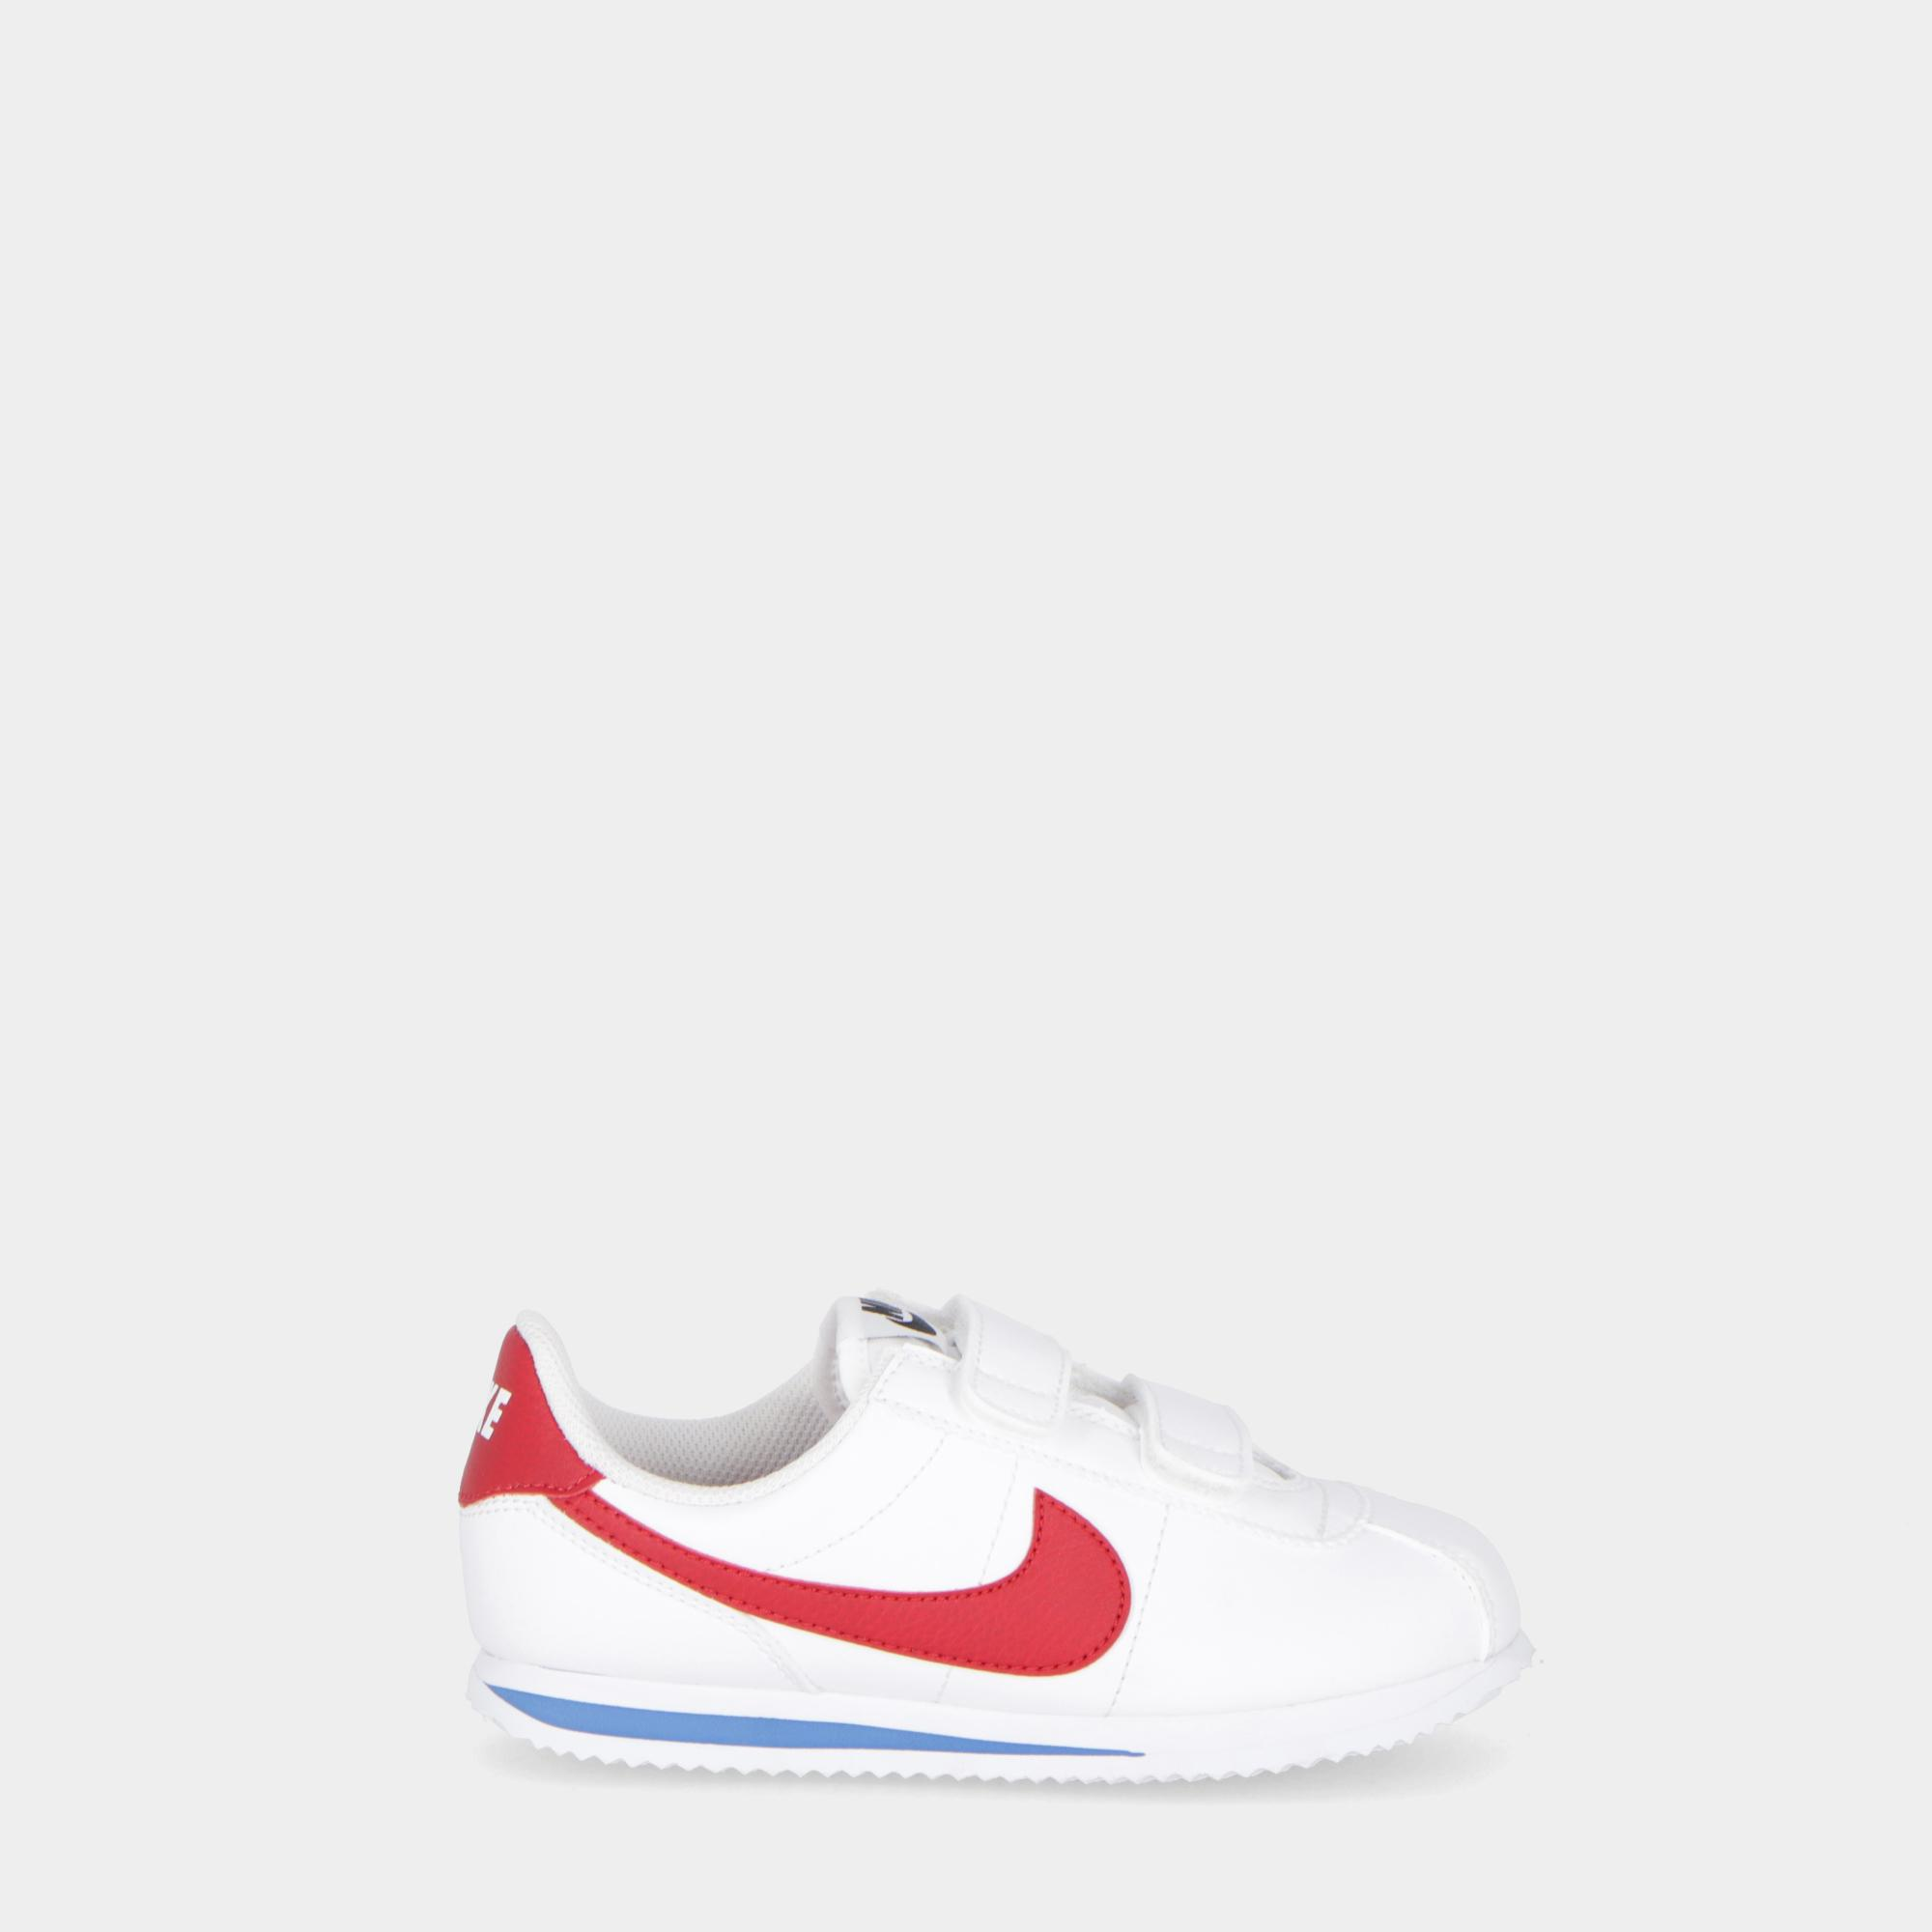 on sale 6719a 66f14 NIKE CORTEZ BASIC SL (PSV) - Kids